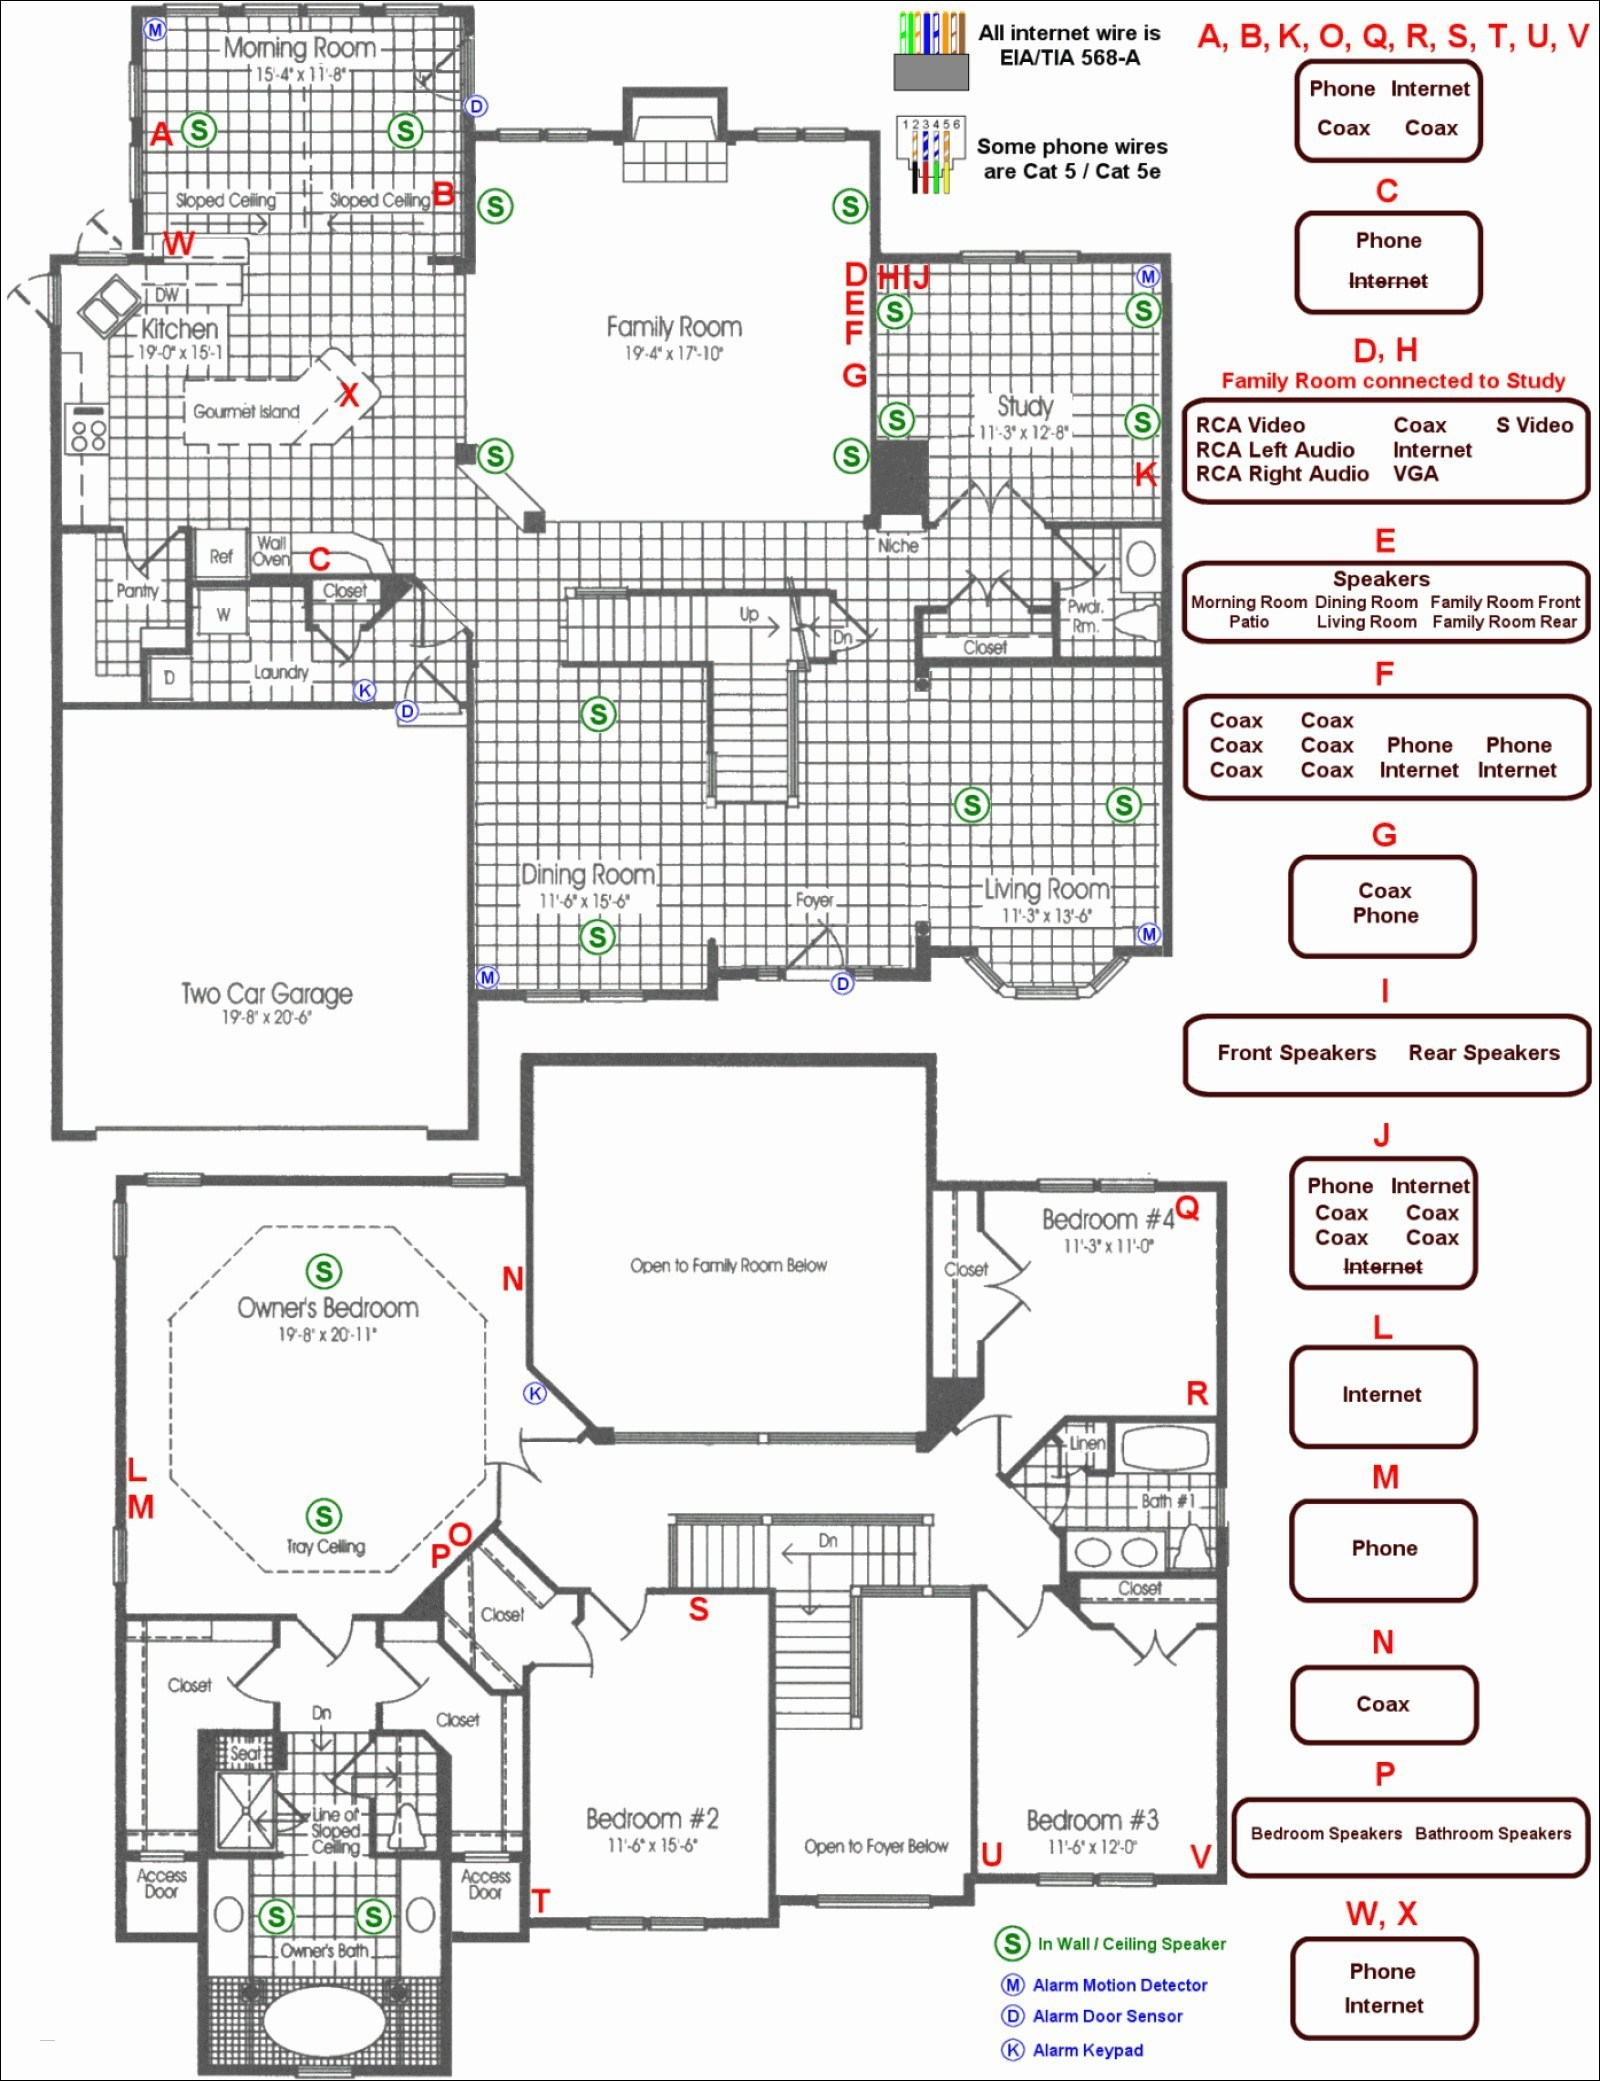 Home wiring diagram software collection wiring diagram sample home wiring diagram software collection wire diagram new home wiring diagram gallery of wire diagram download wiring diagram ccuart Gallery